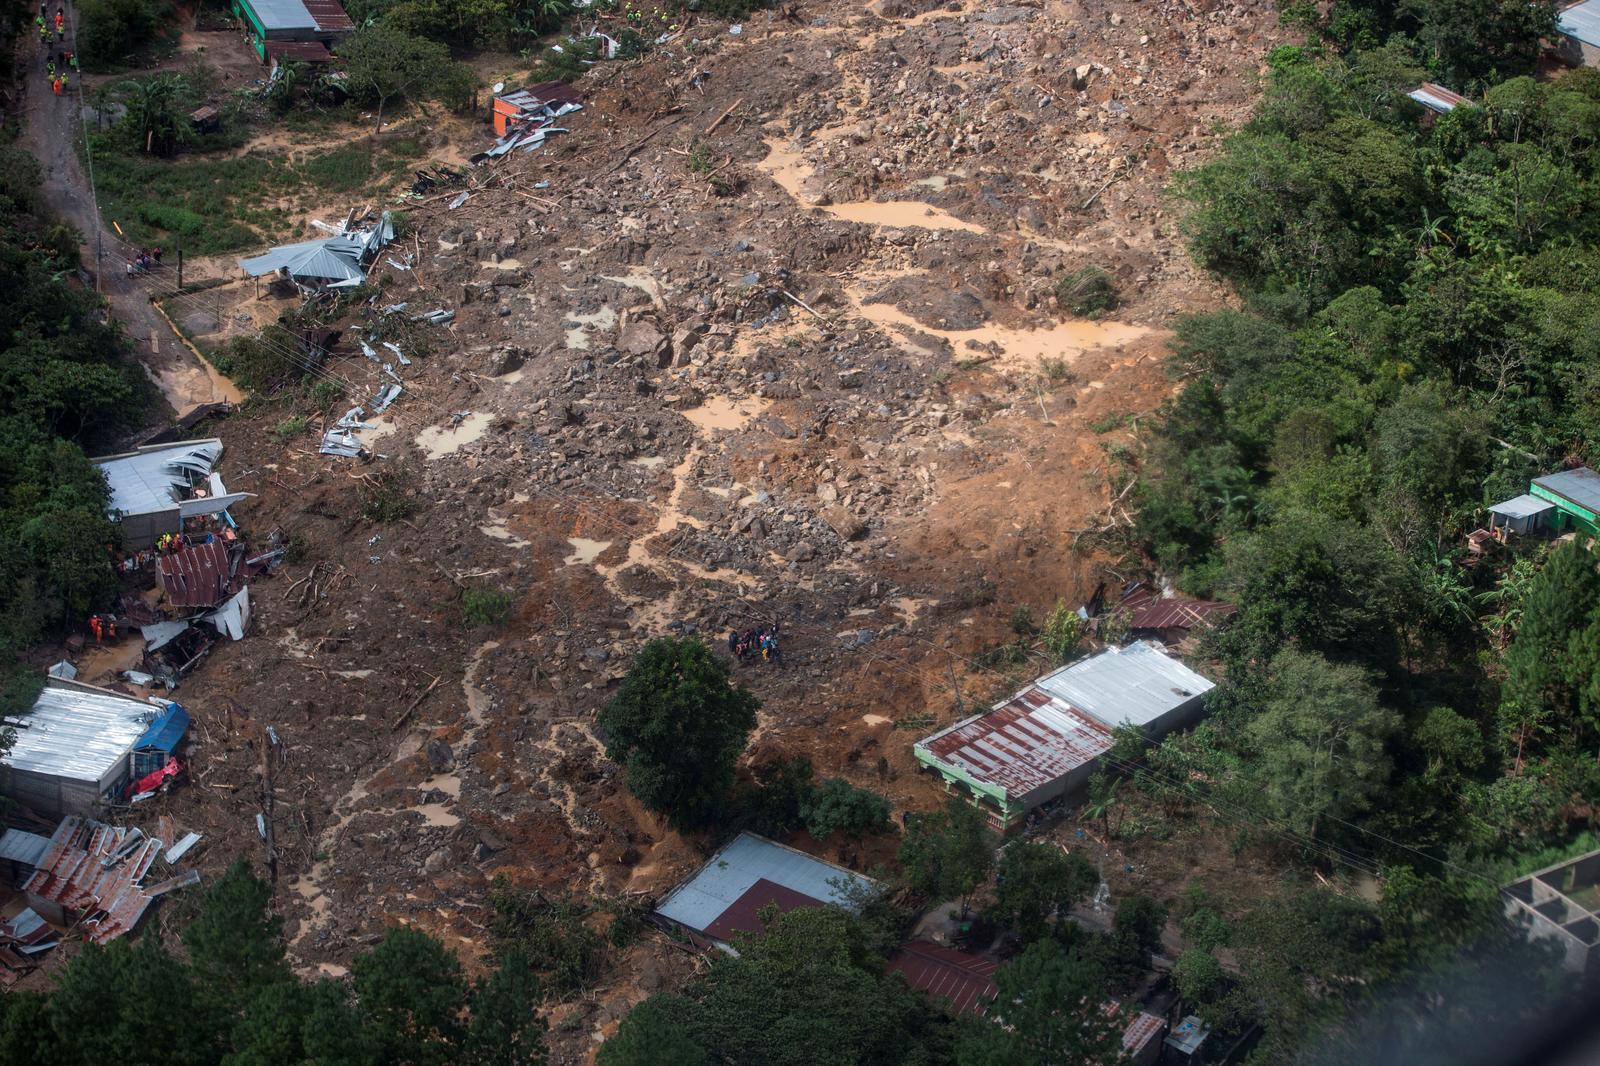 A general view shows an area hit by a mudslide, caused by heavy rains brought by Storm Eta, as the search for victims continue in the buried village of Queja, Alta Verapaz, Guatemala November 7, 2020. Photo: Esteban Bilba/EFE/Pool via Reuters